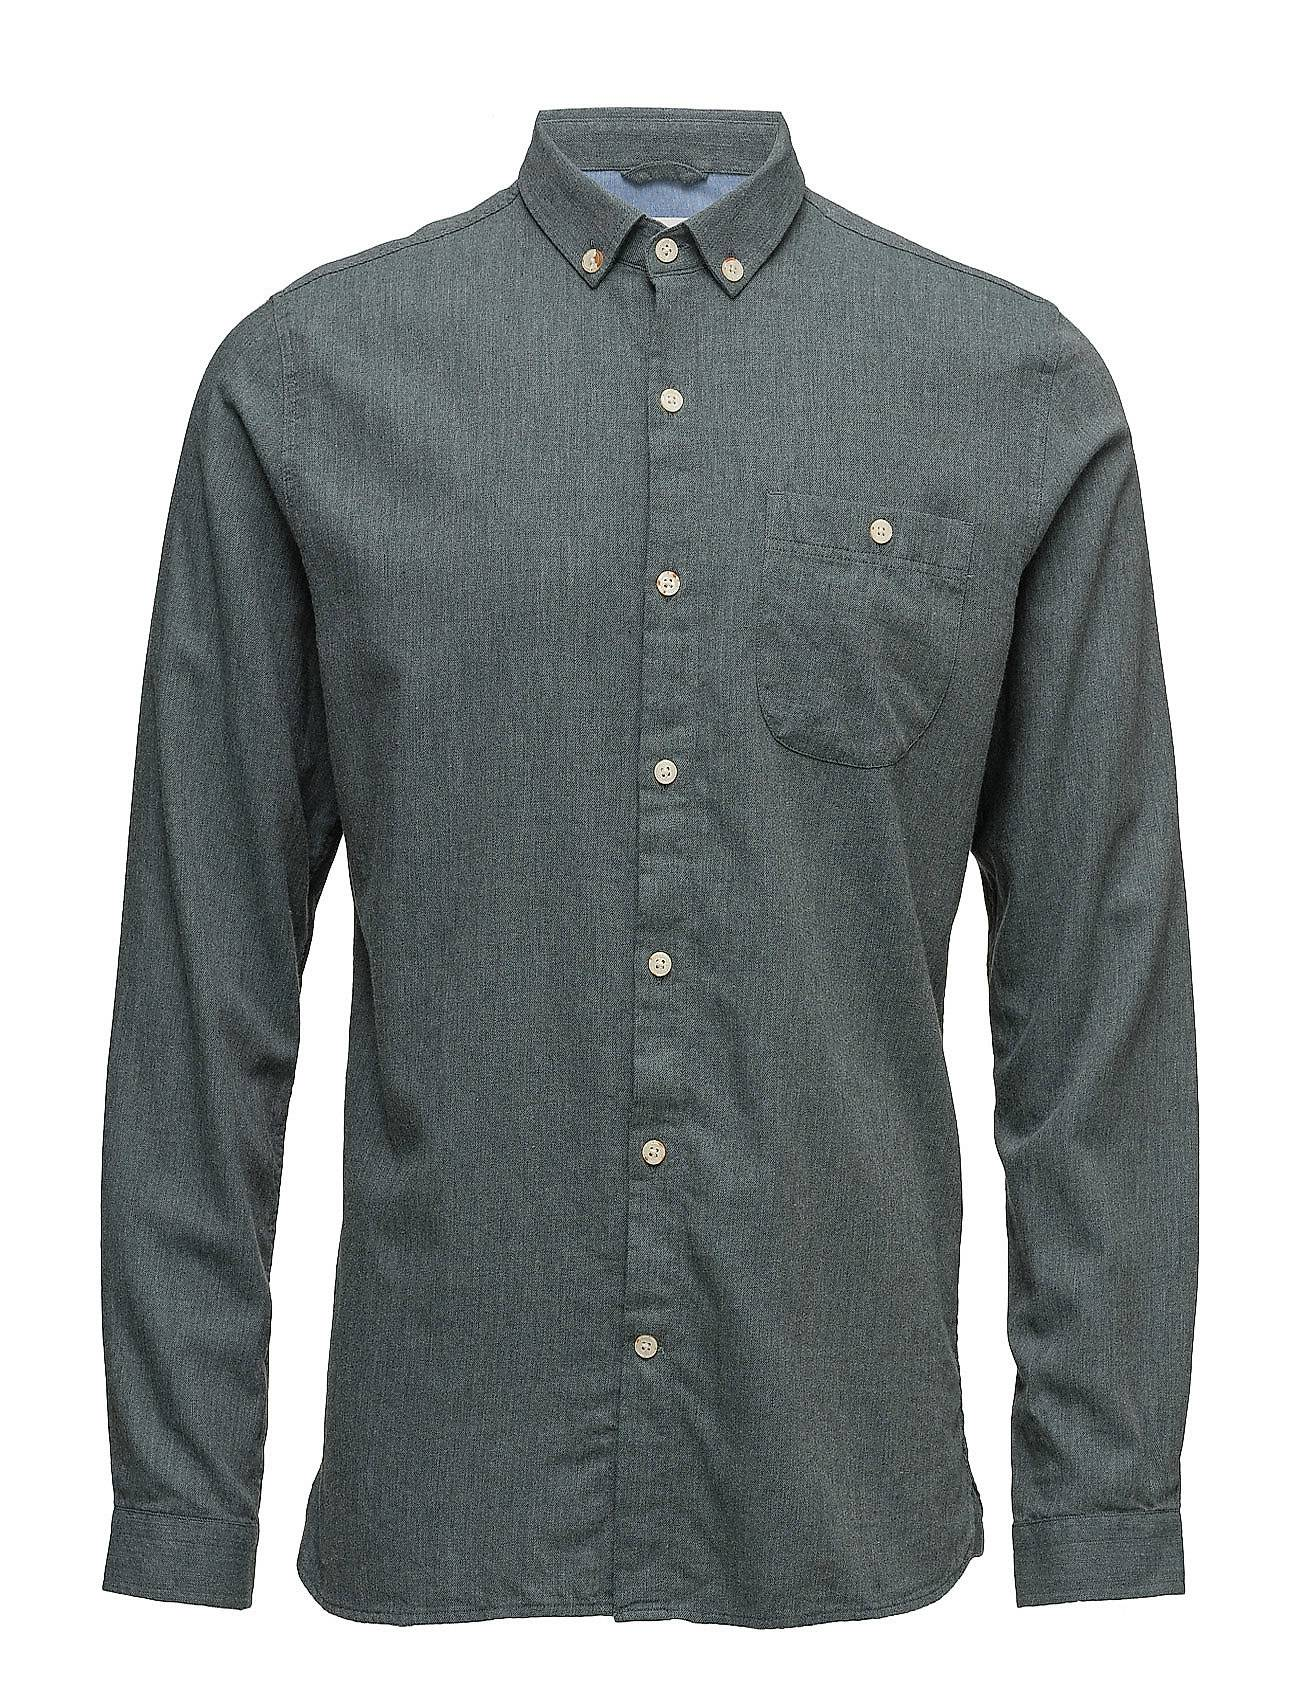 Knowledge Cotton Apparel Solid Col. Flannel Shirt - Gots